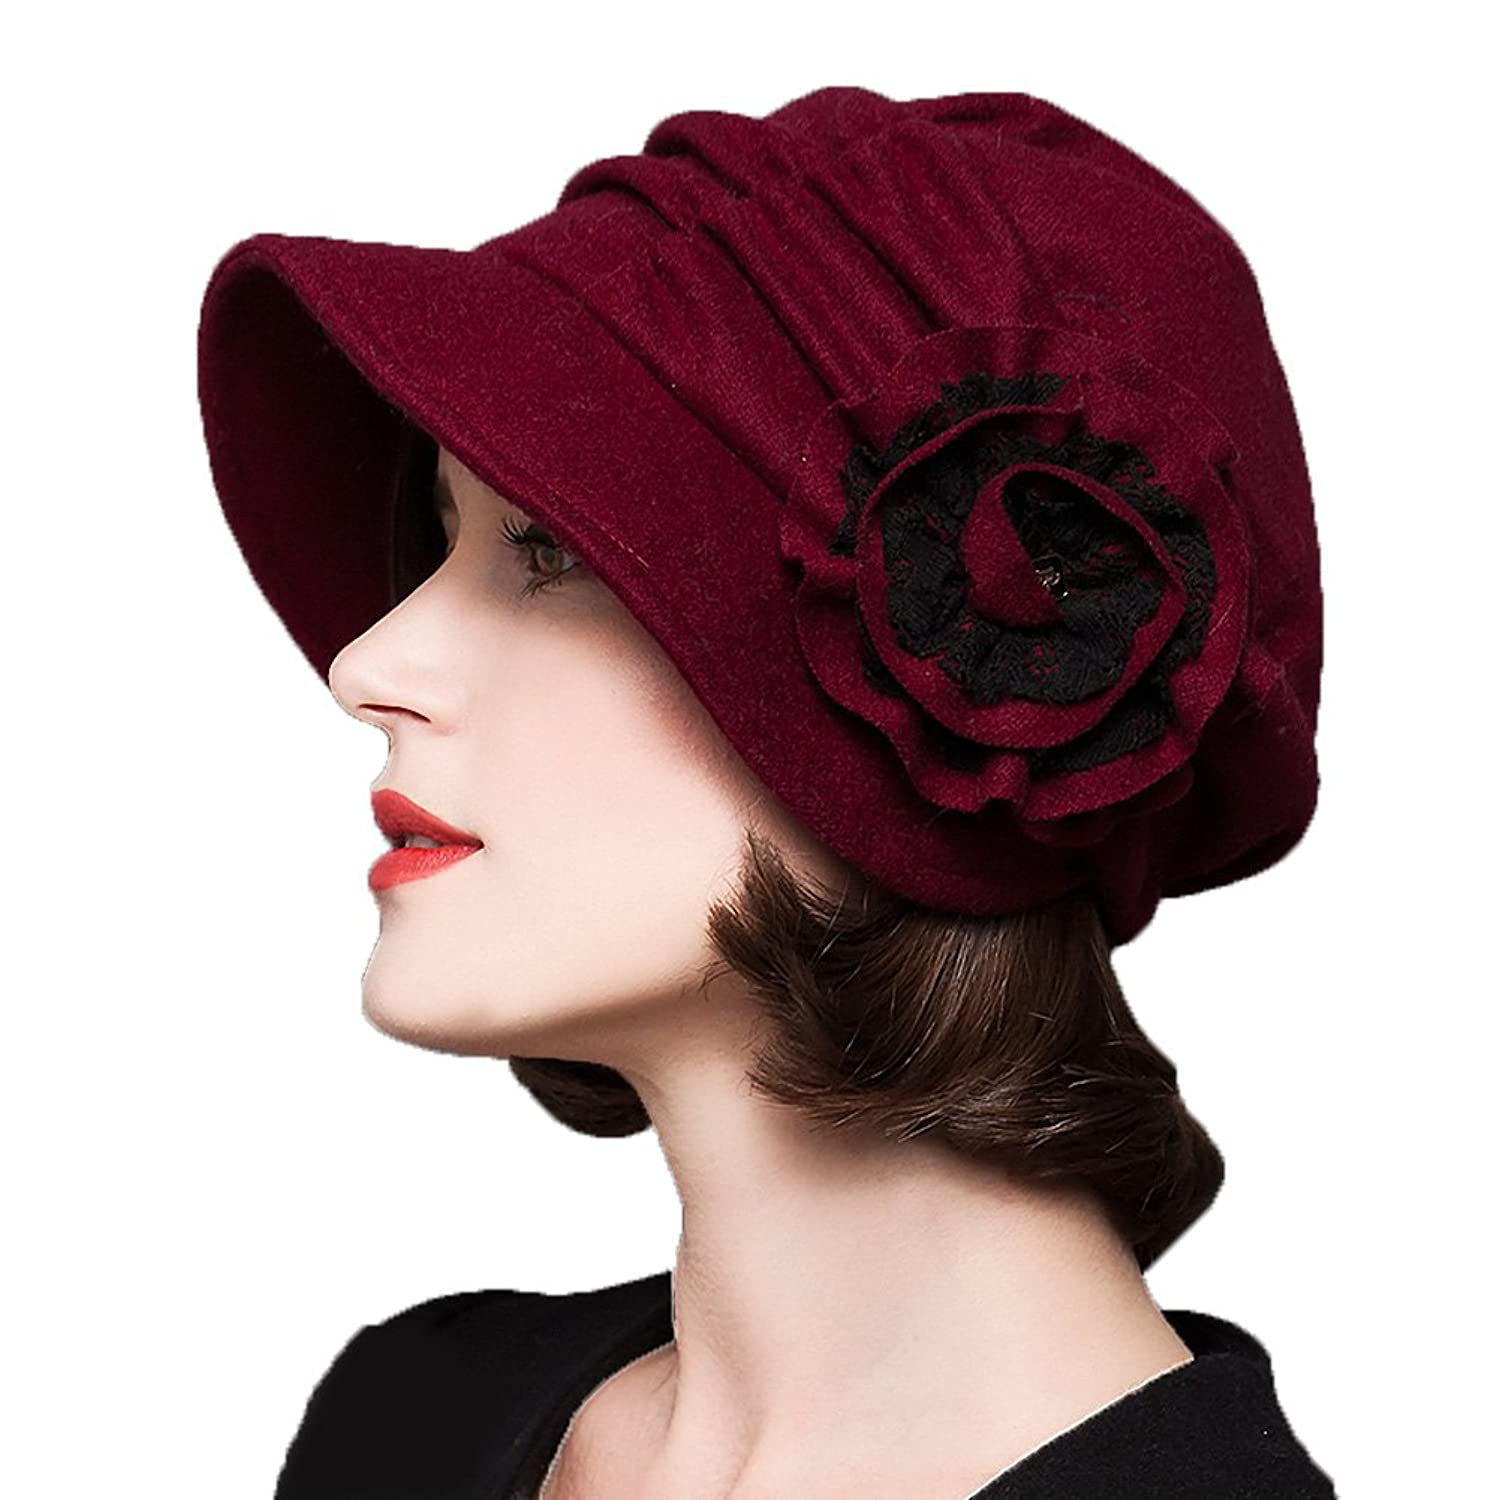 Retro Vintage Style Hats  Decorative Flowers Wool Beret $28.40 AT vintagedancer.com